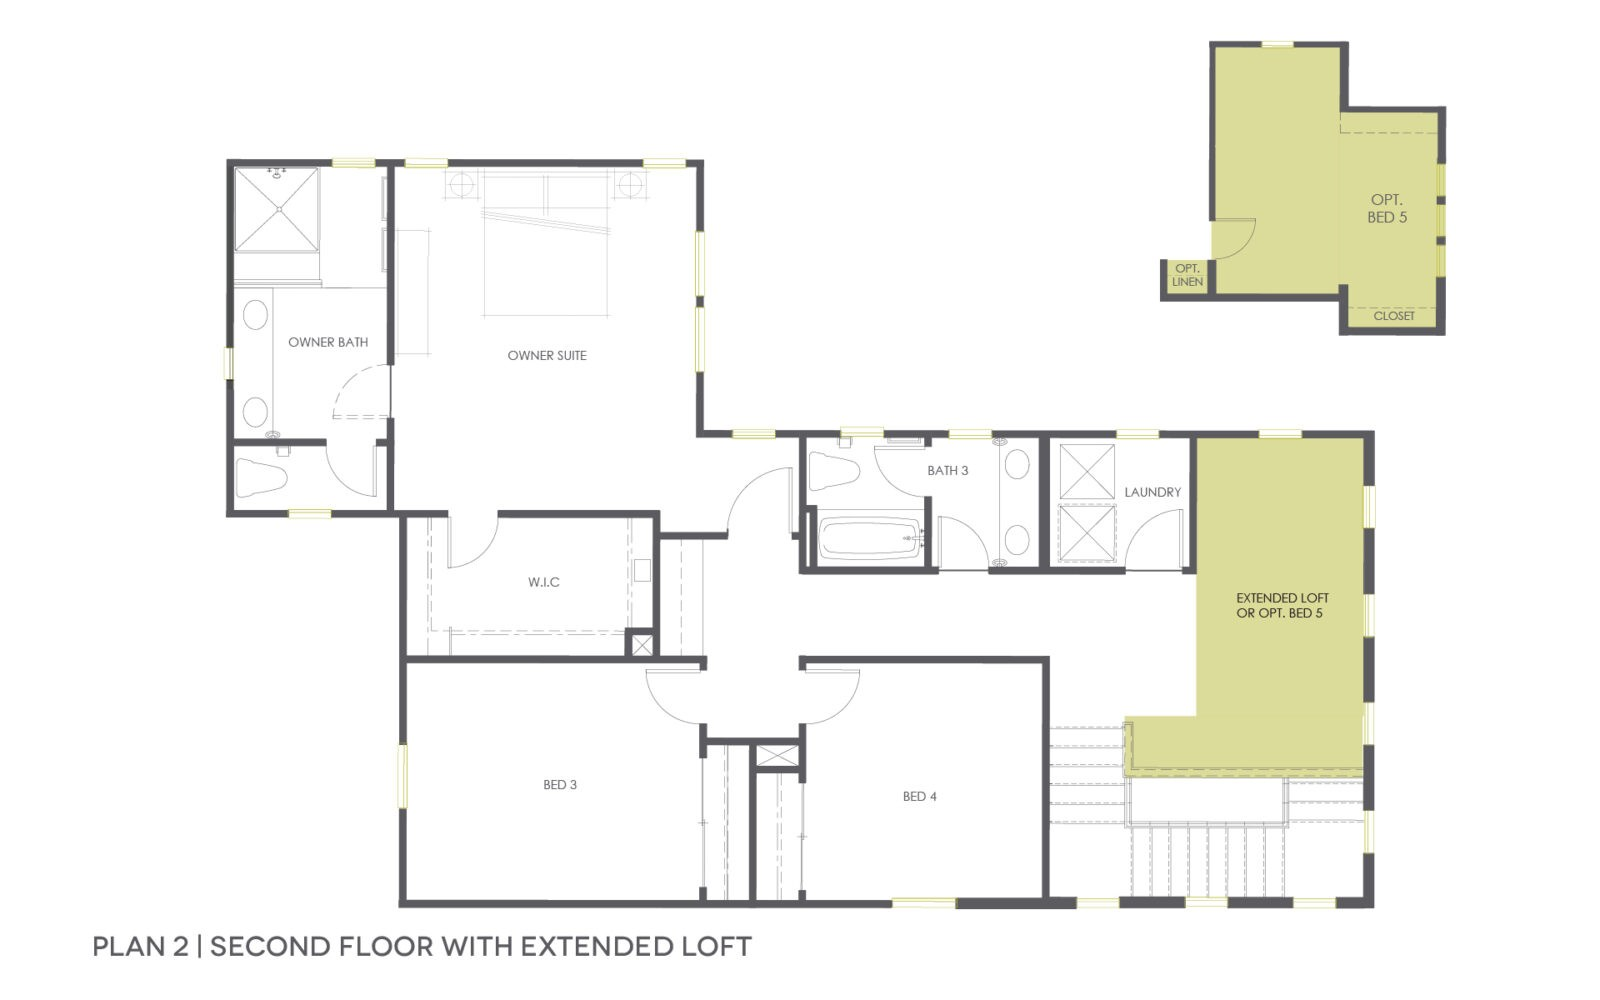 Plan 2B Second Floor